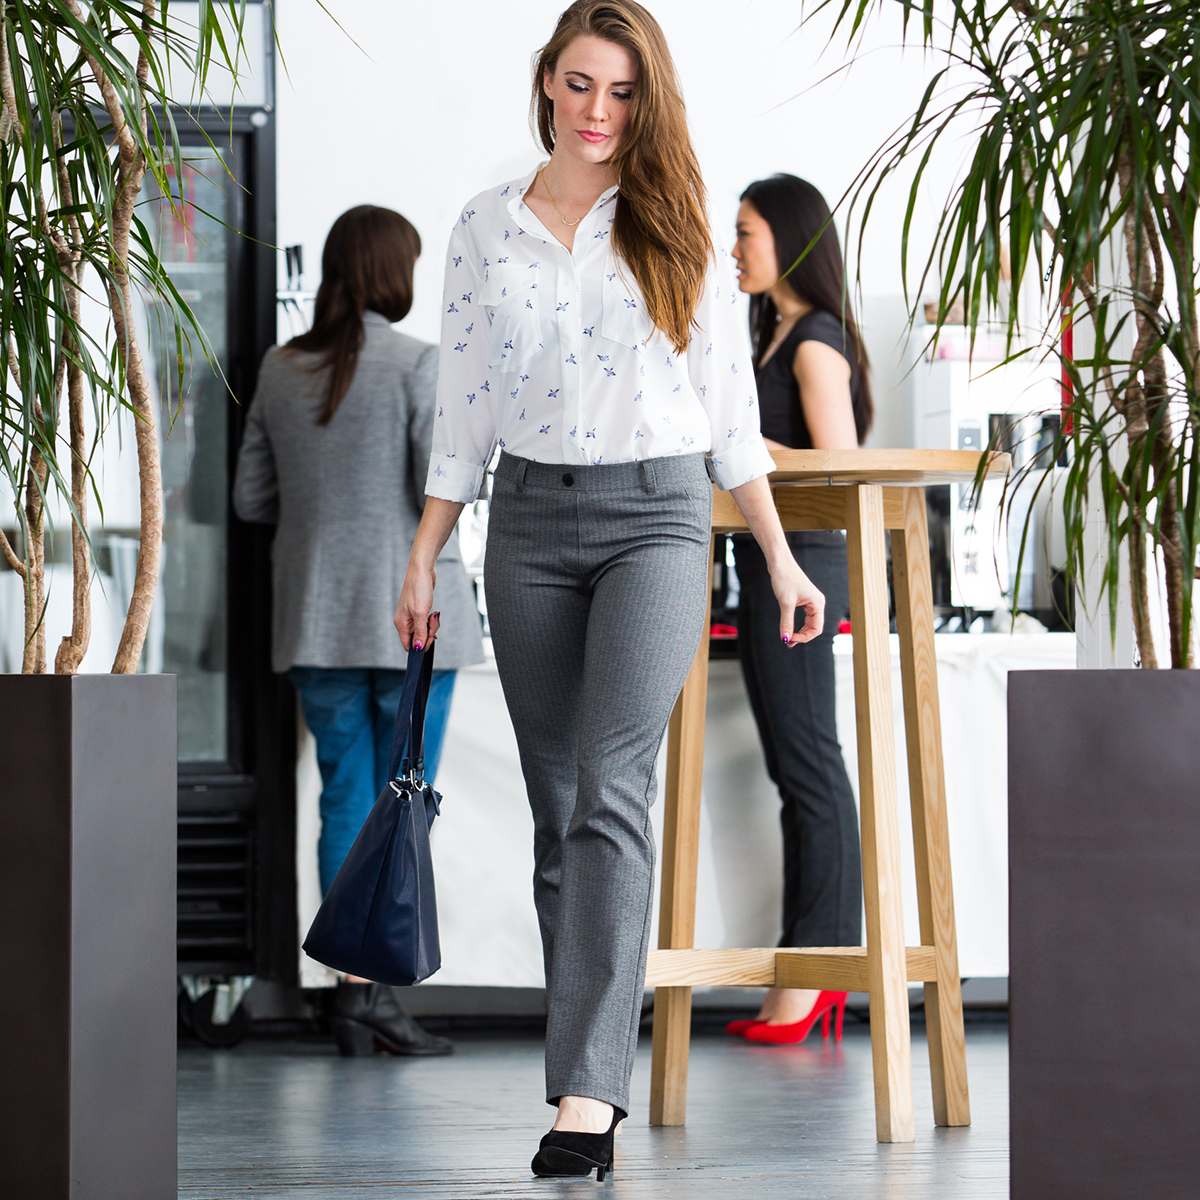 Betabrand Pants Review | Betabrand Yoga Dress Pants | Betabrand Logo